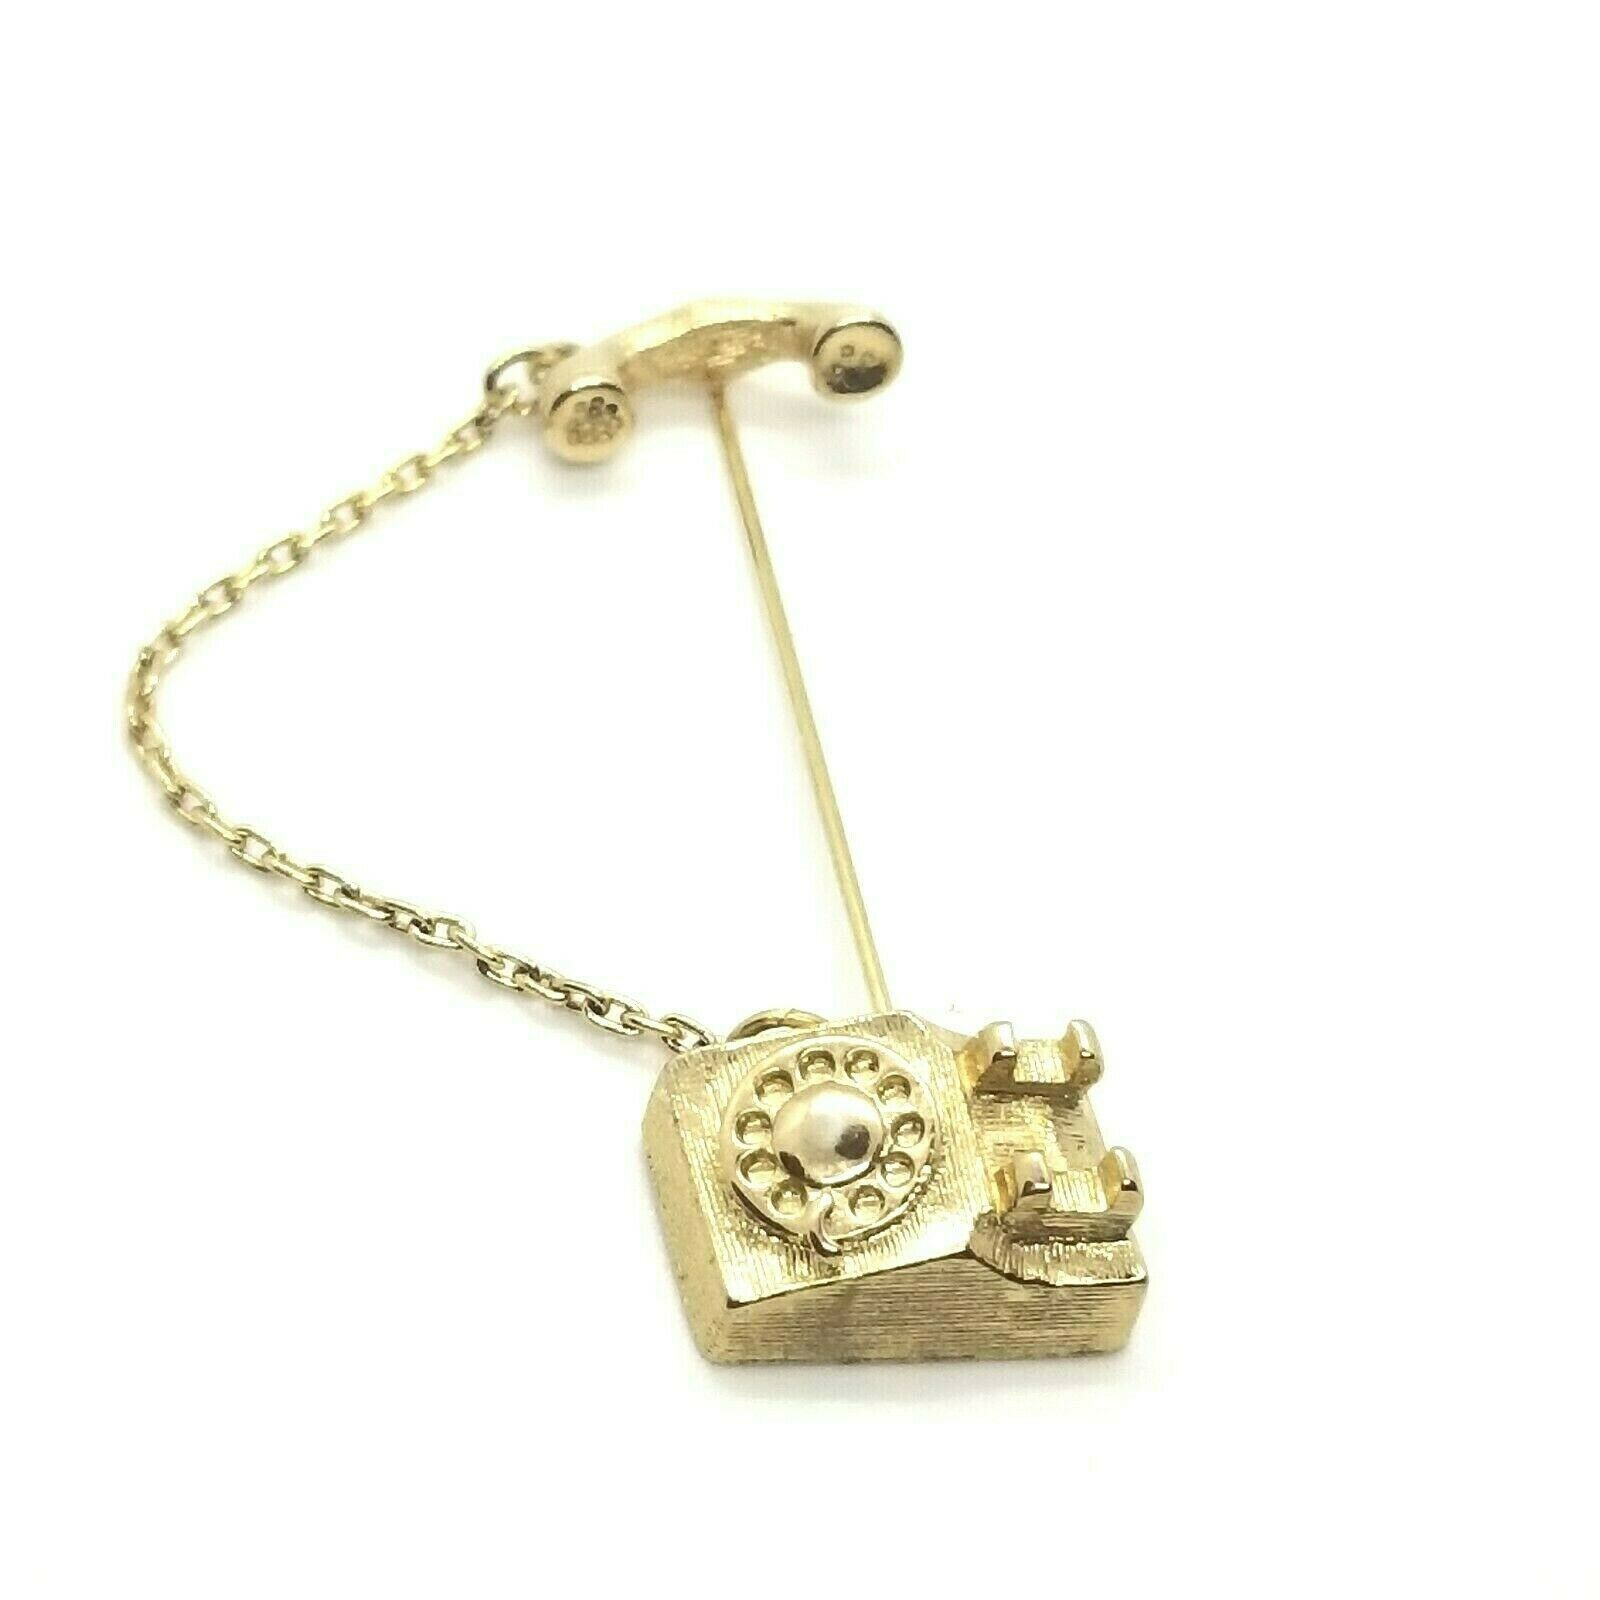 Primary image for Vintage Avon Fashion Jewelry Gold Tone Rotary Telephone Stick Pin